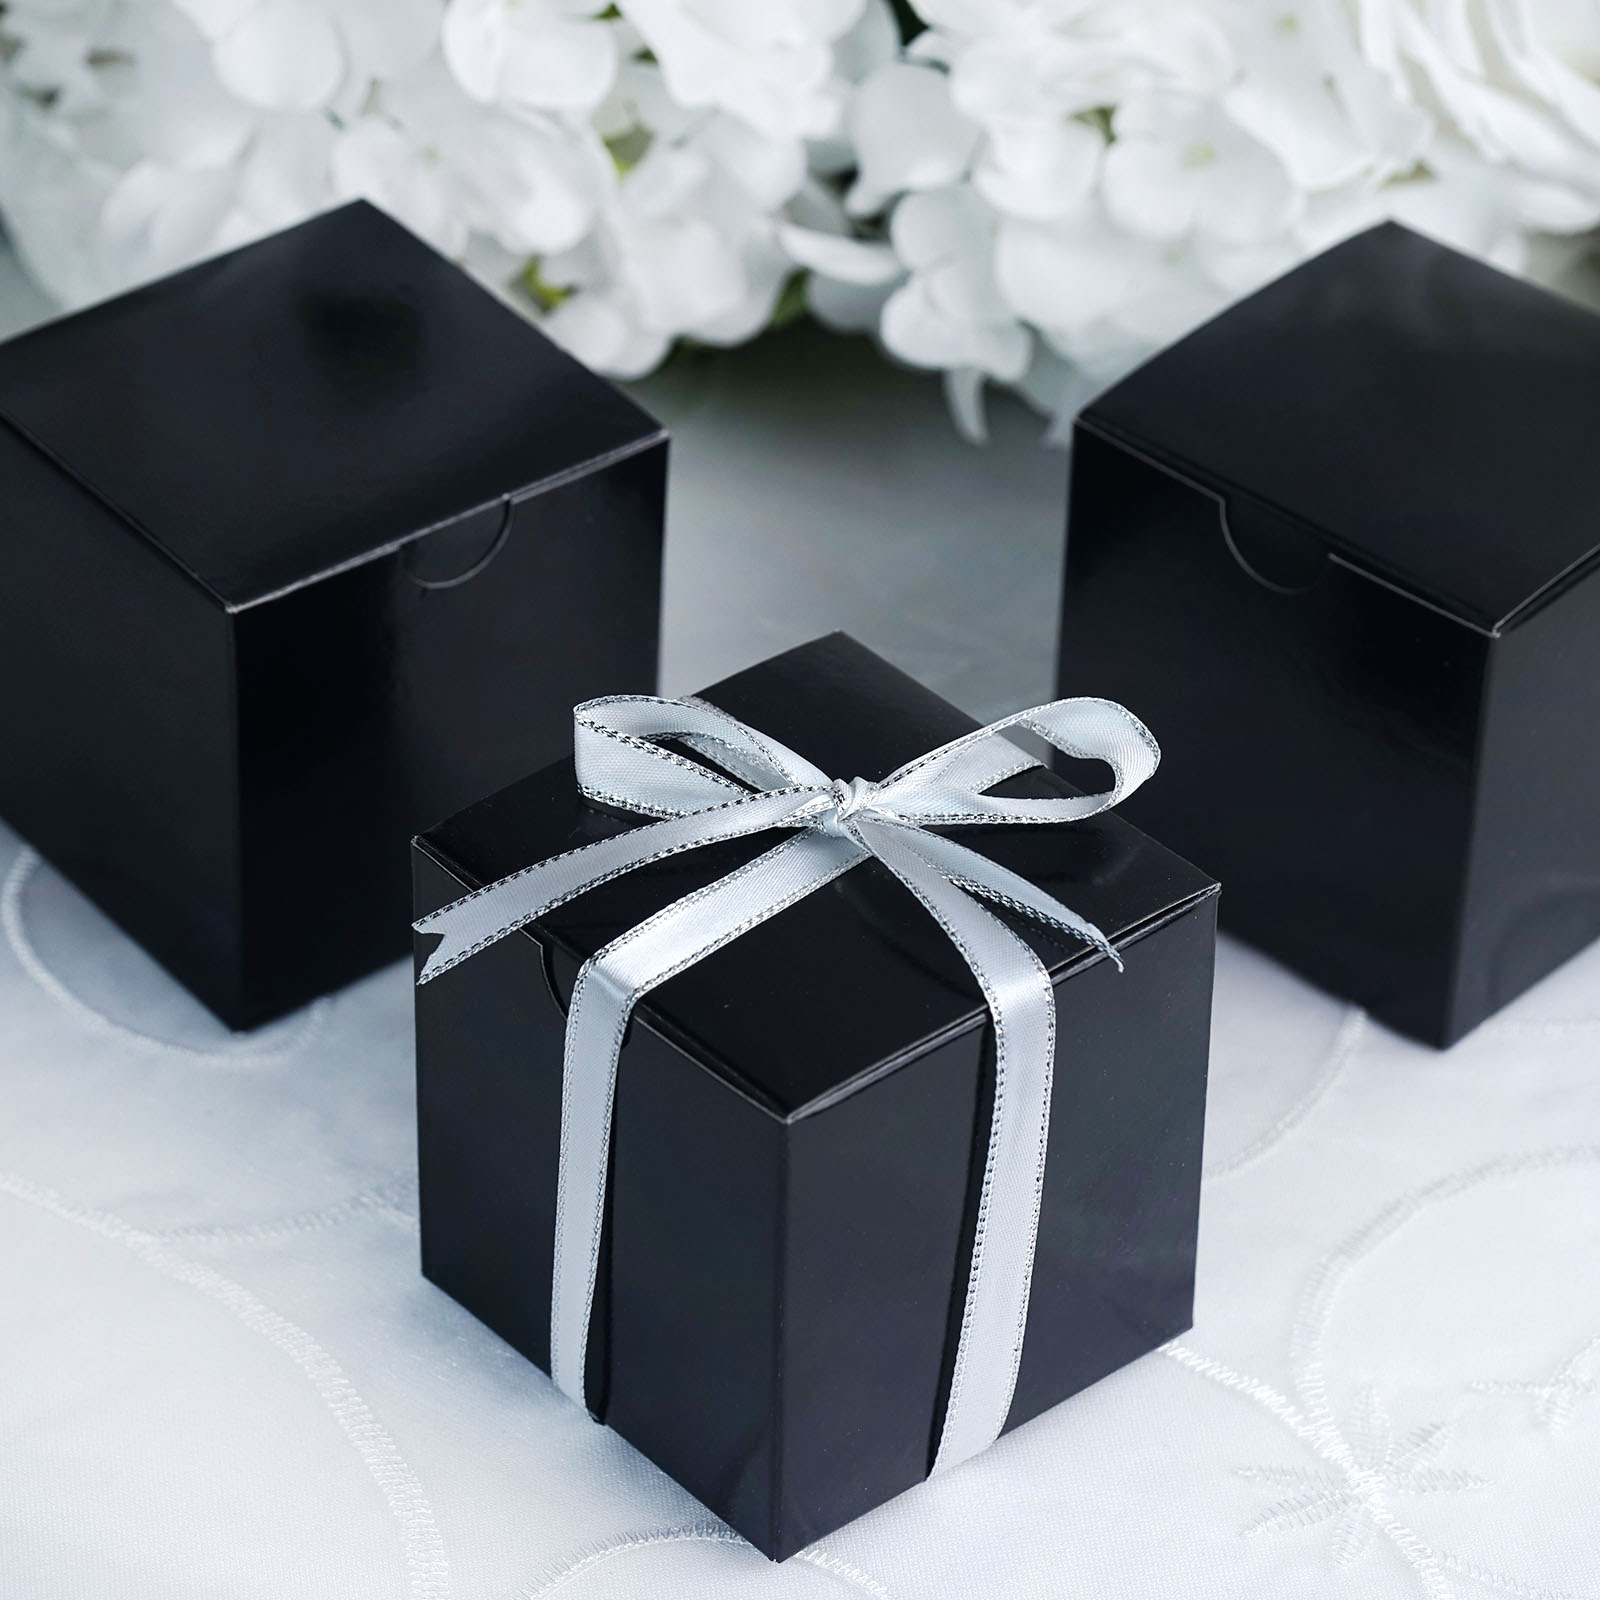 300 3x3x3 Wedding Favor Boxes Party Gift Decorations Wholesale